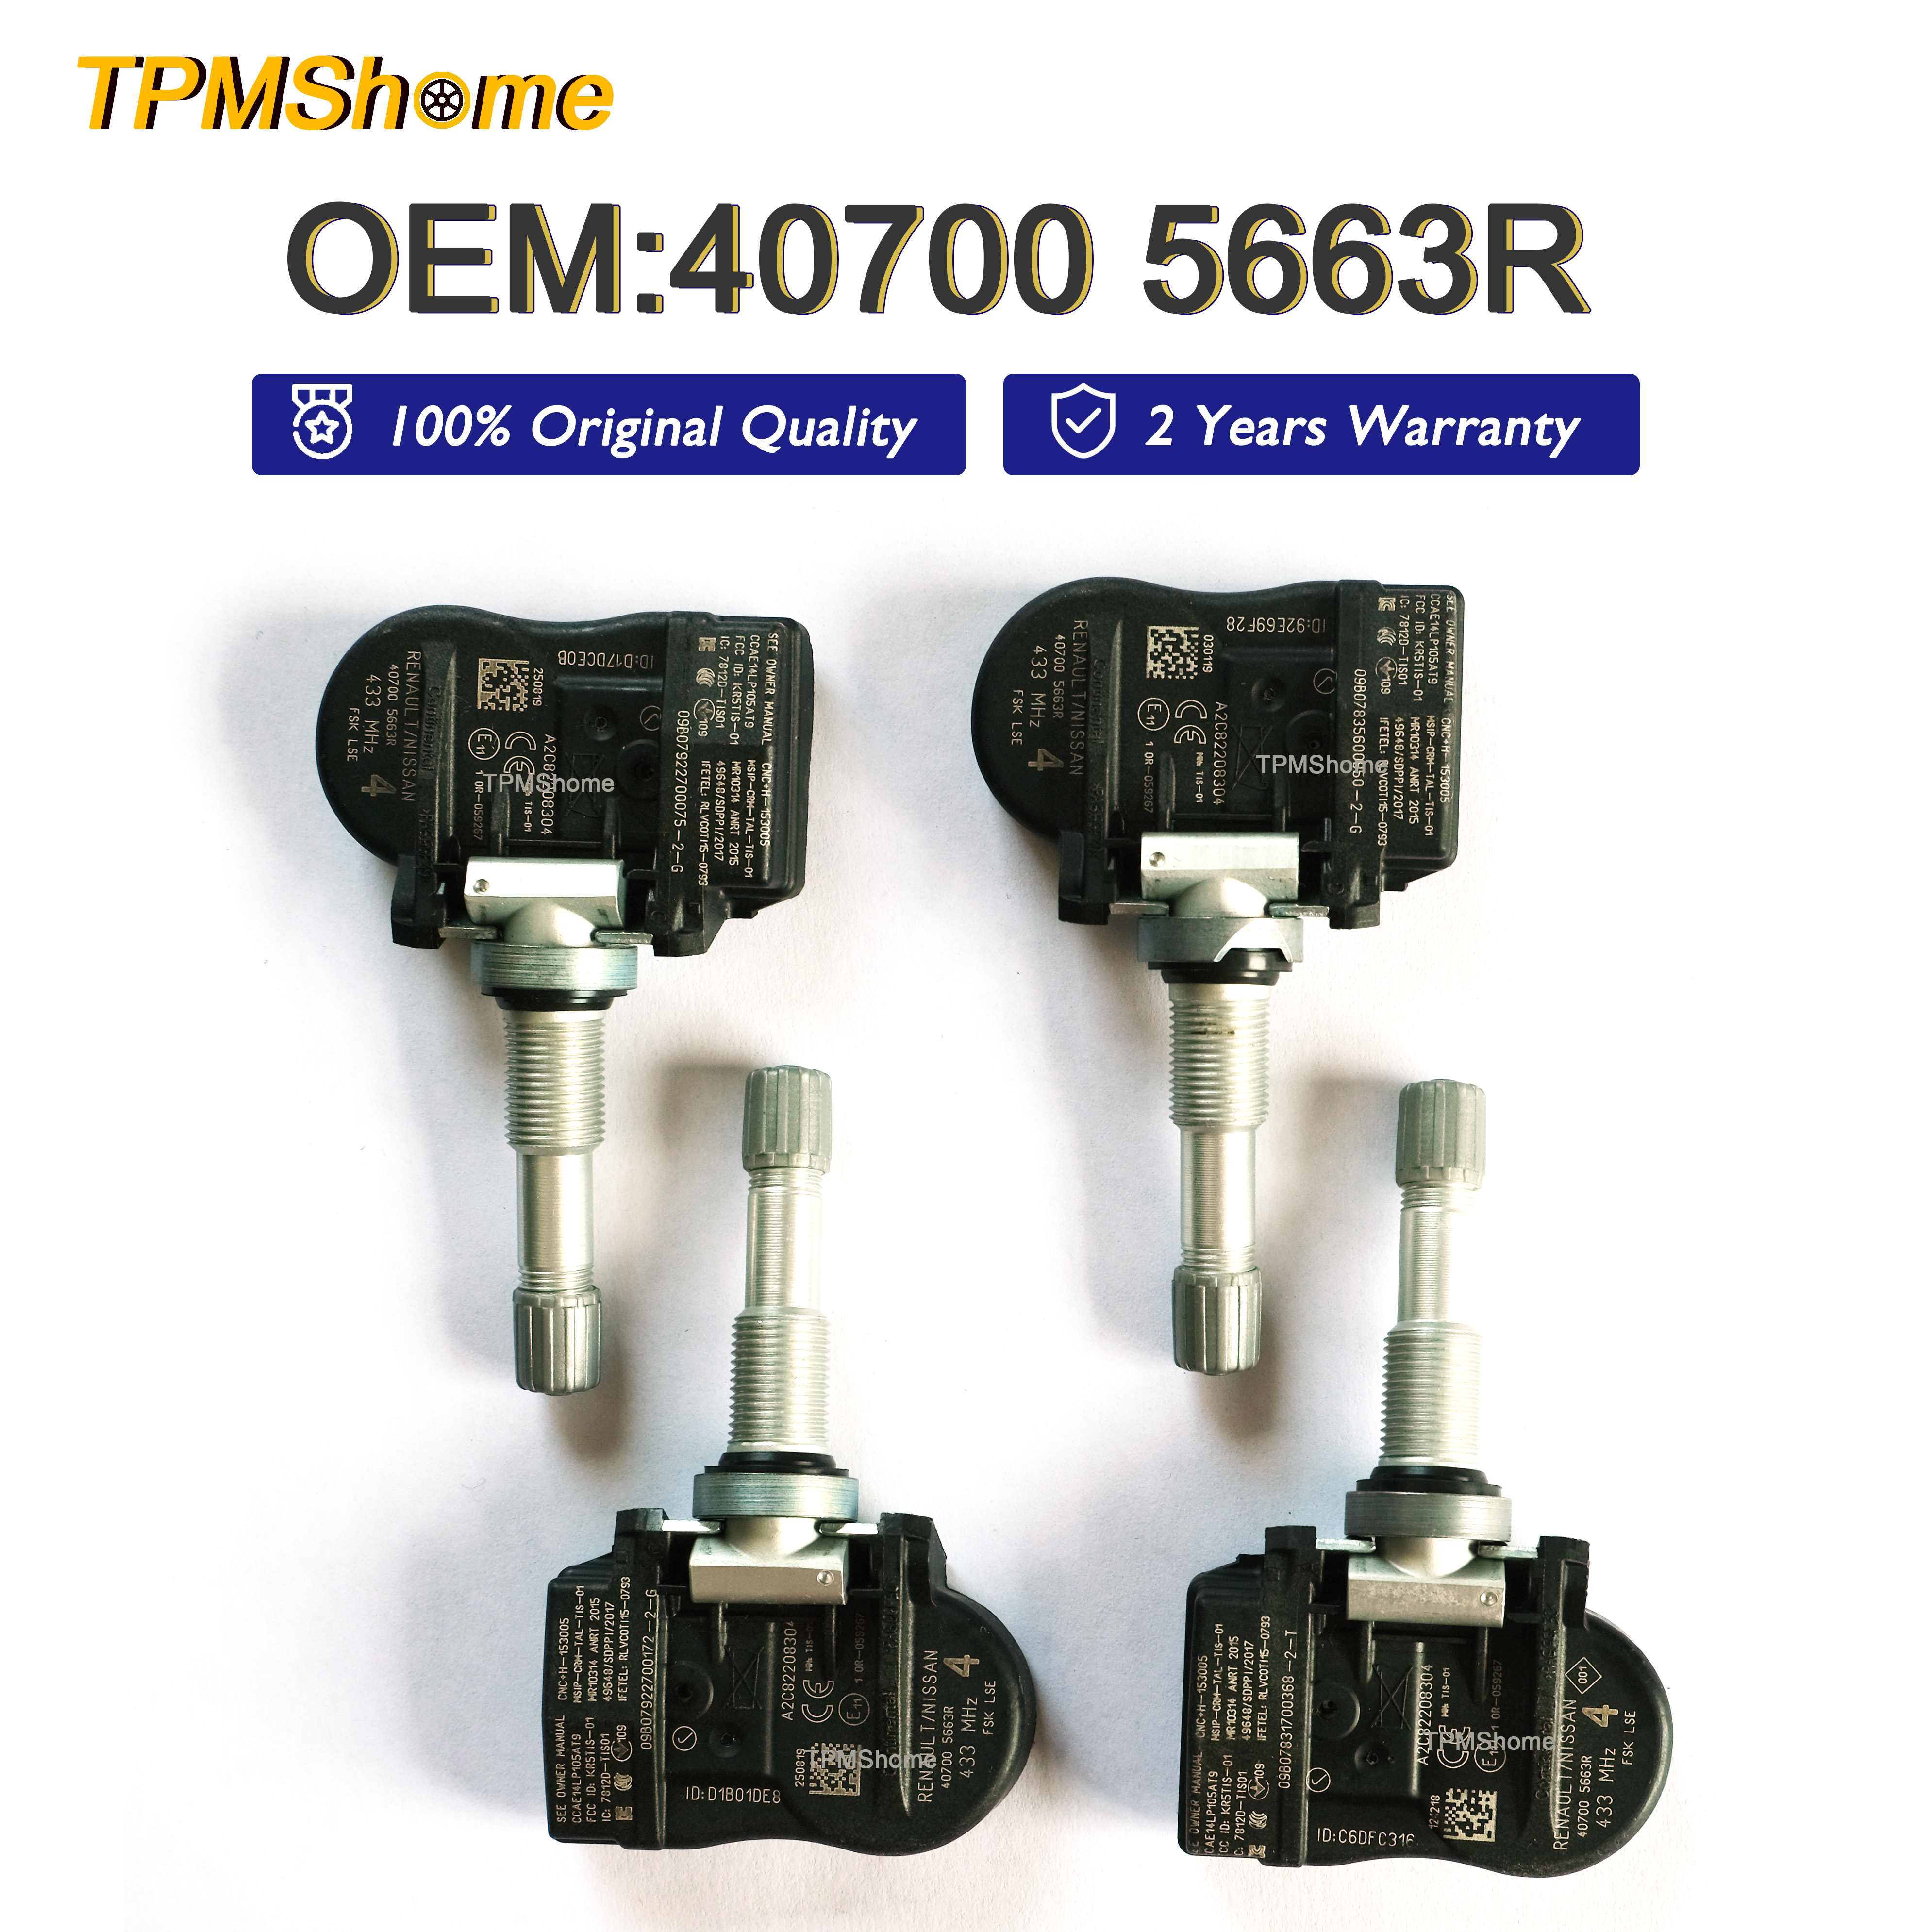 NewYall Pack of 4 TPMS Tire Pressure Monitoring System Sensor 433MHz